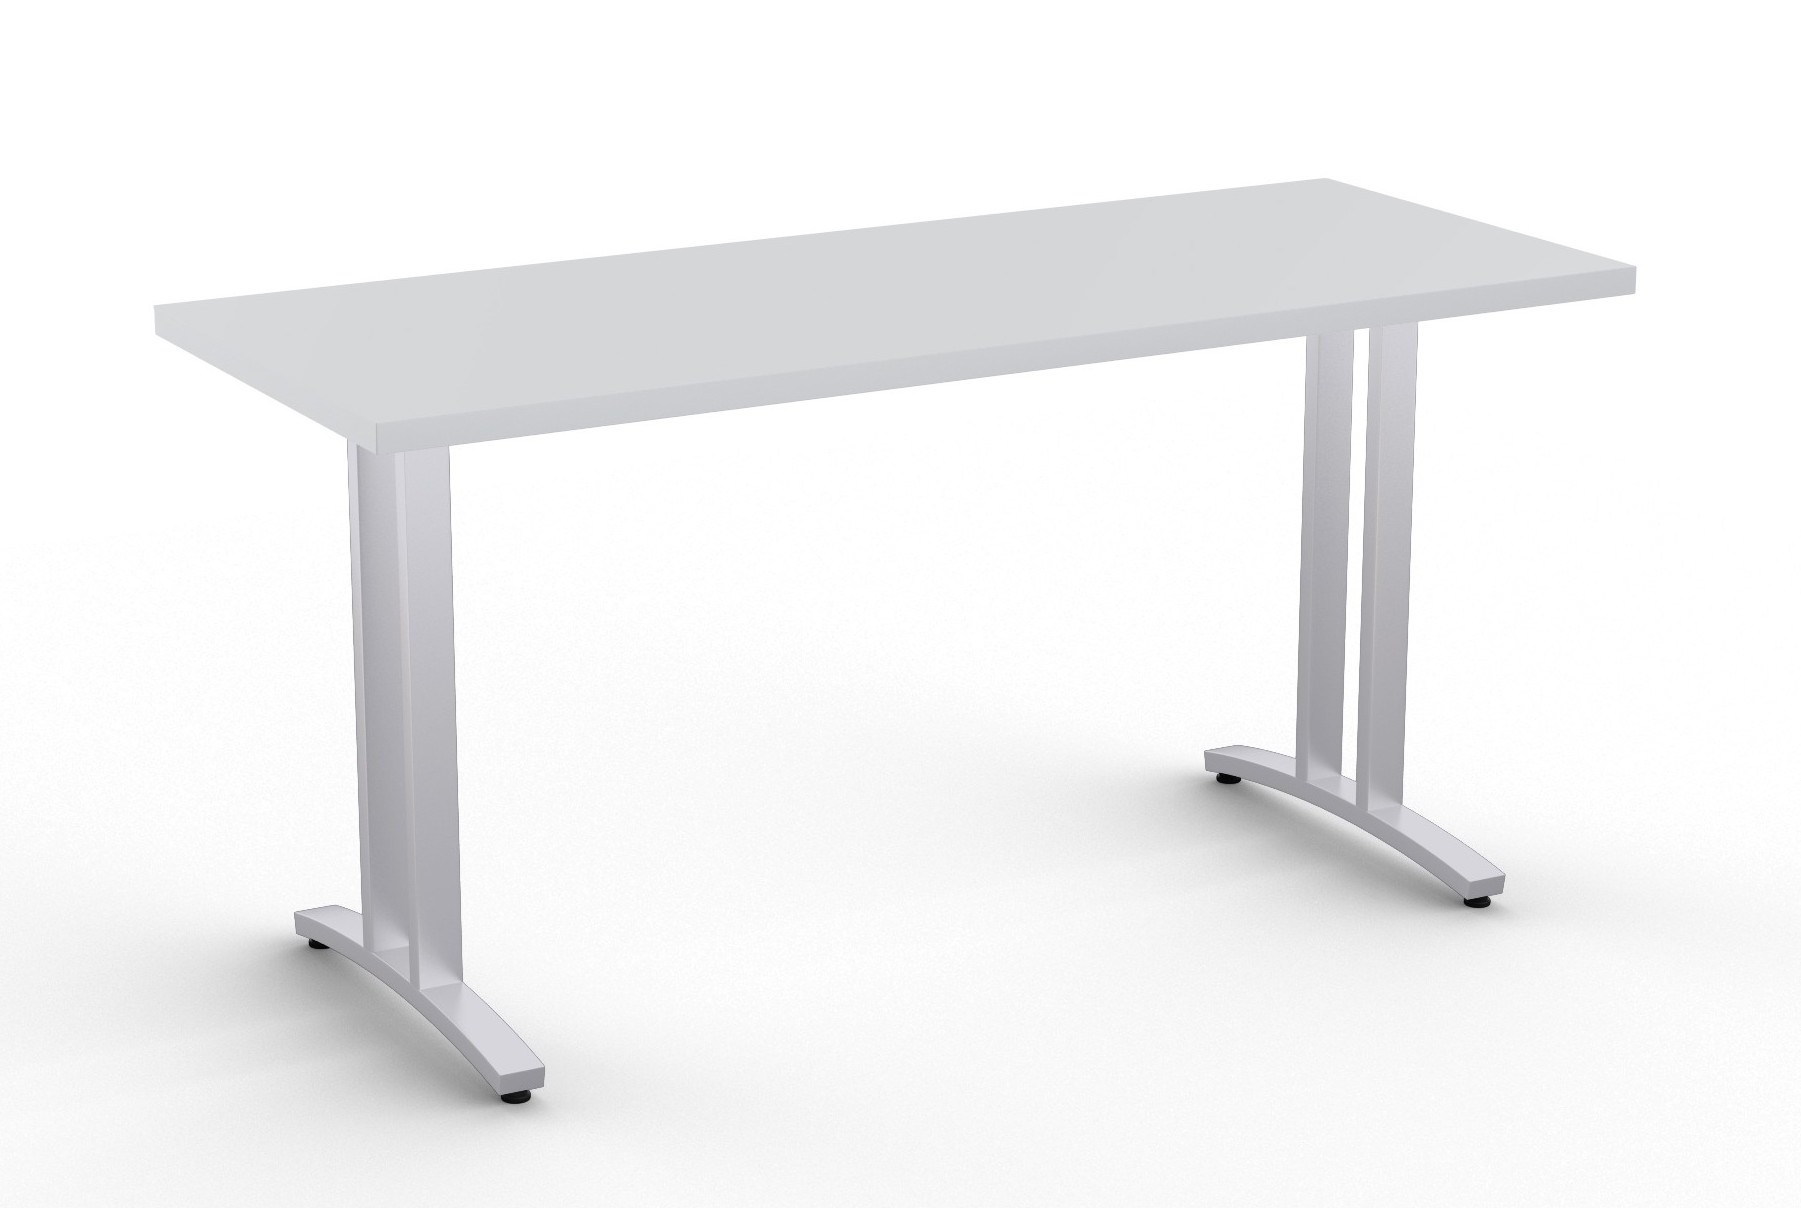 special-t structure 2tl work table in light grey